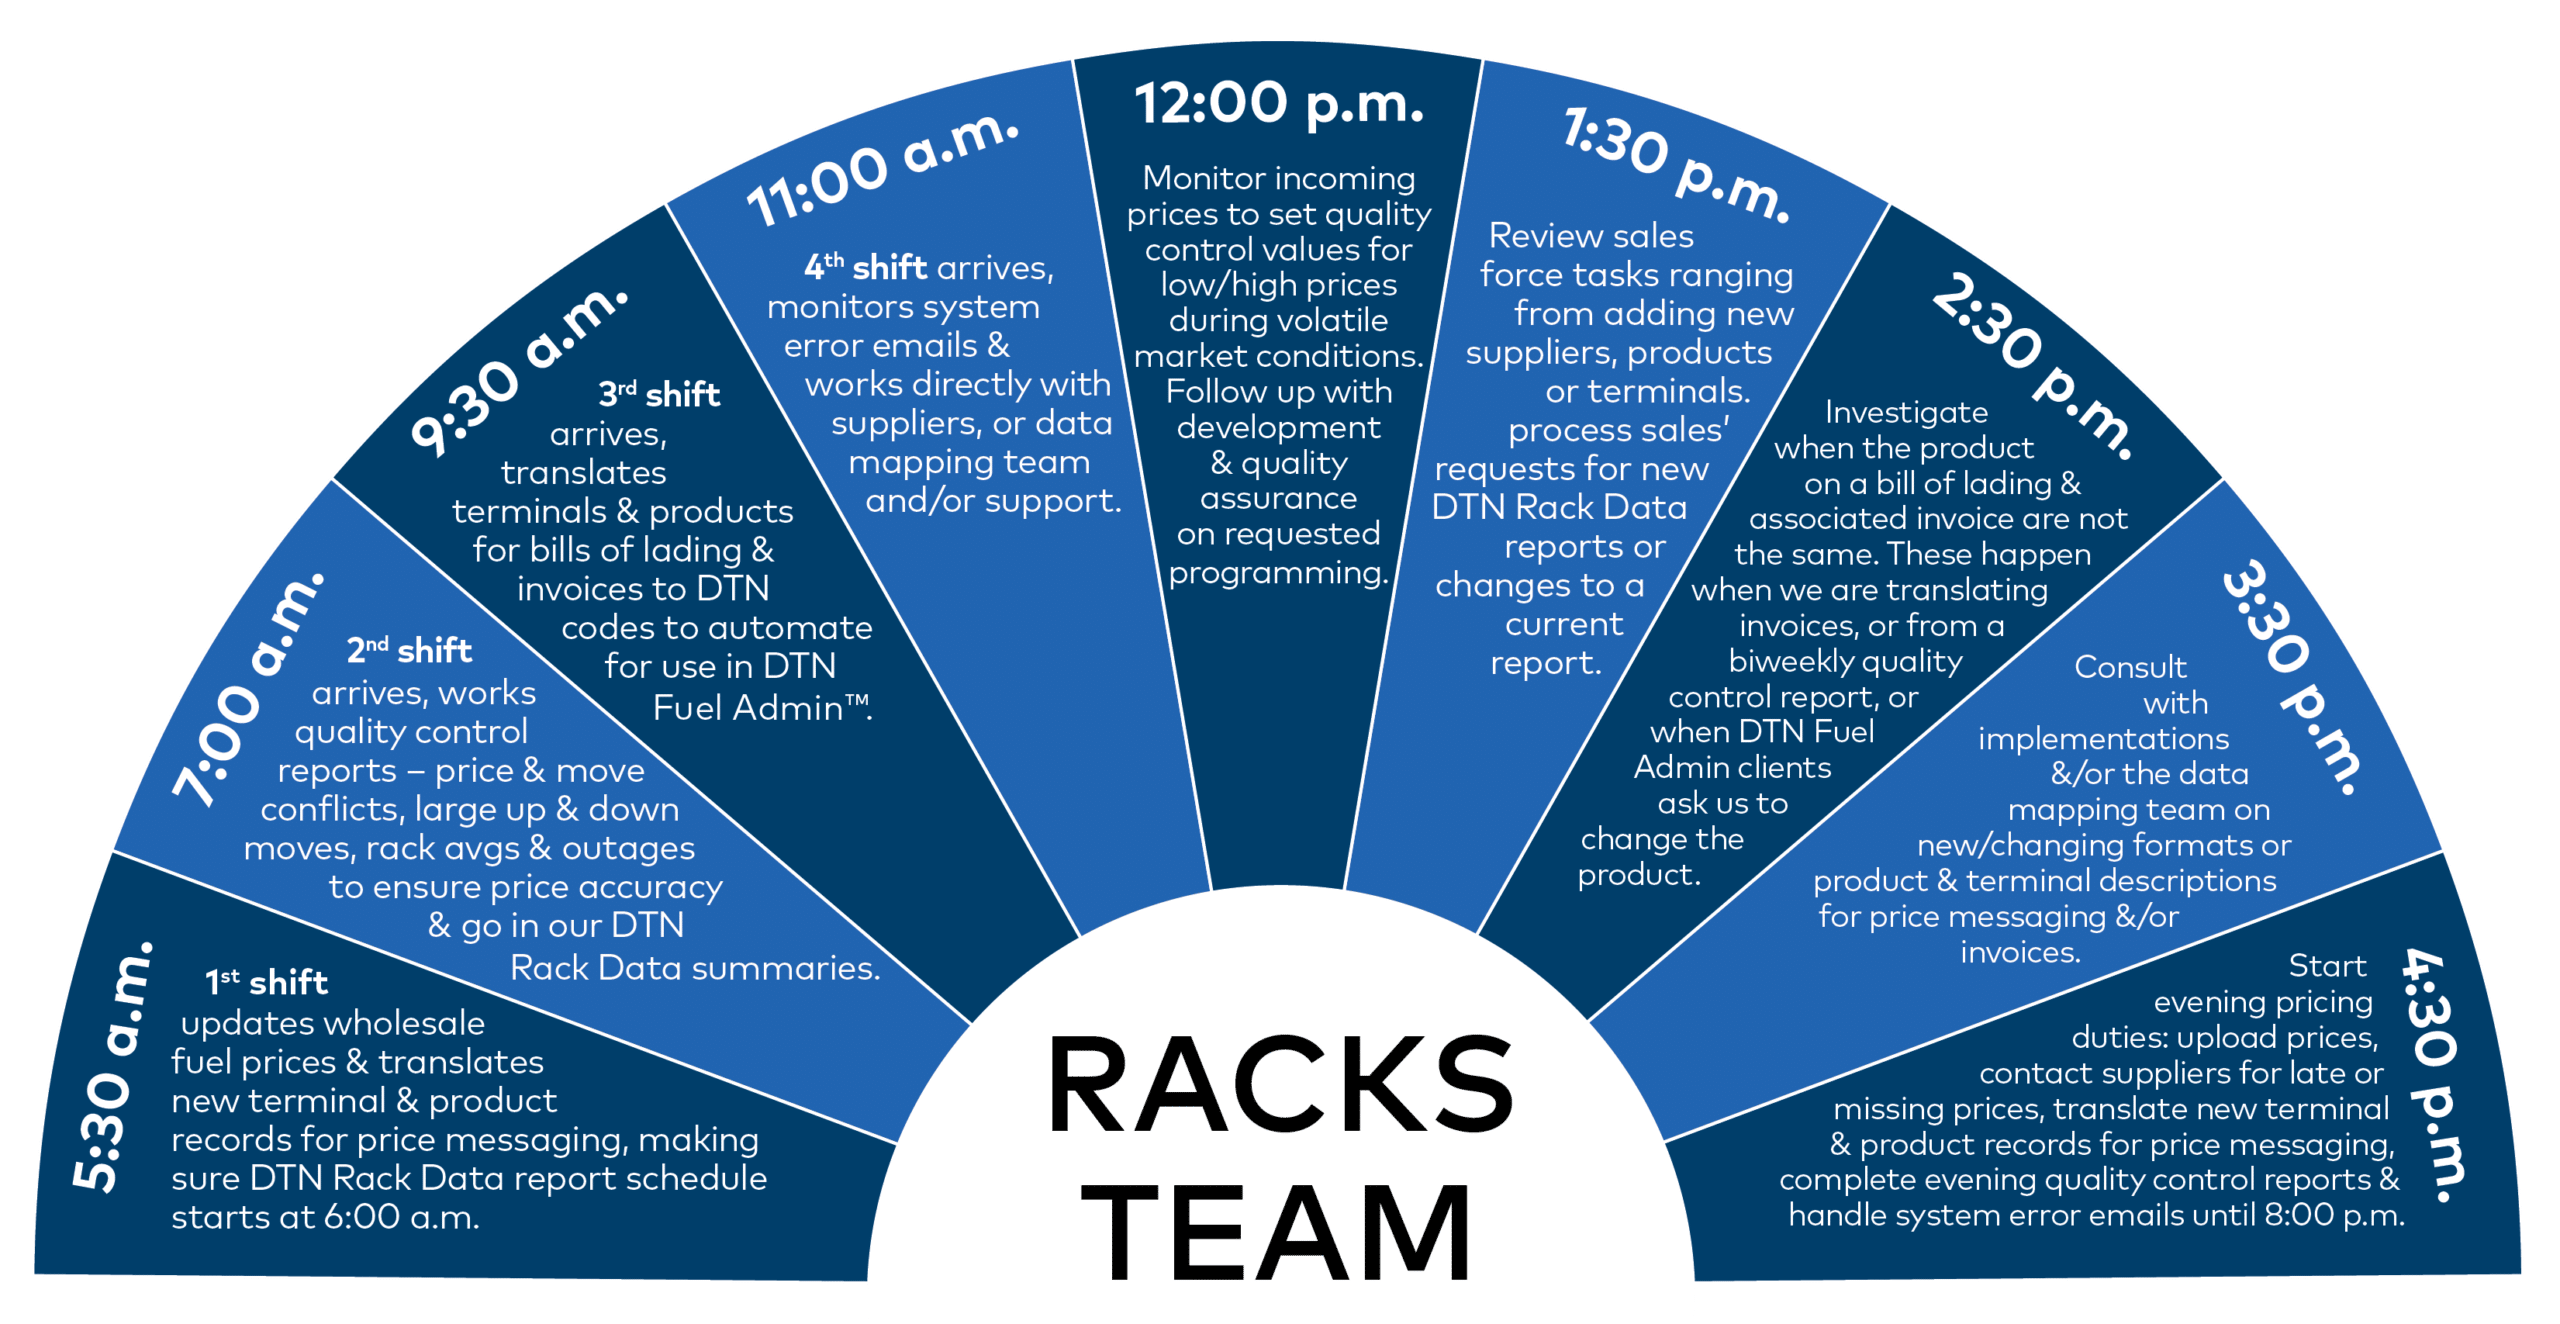 Racks Team Infographic